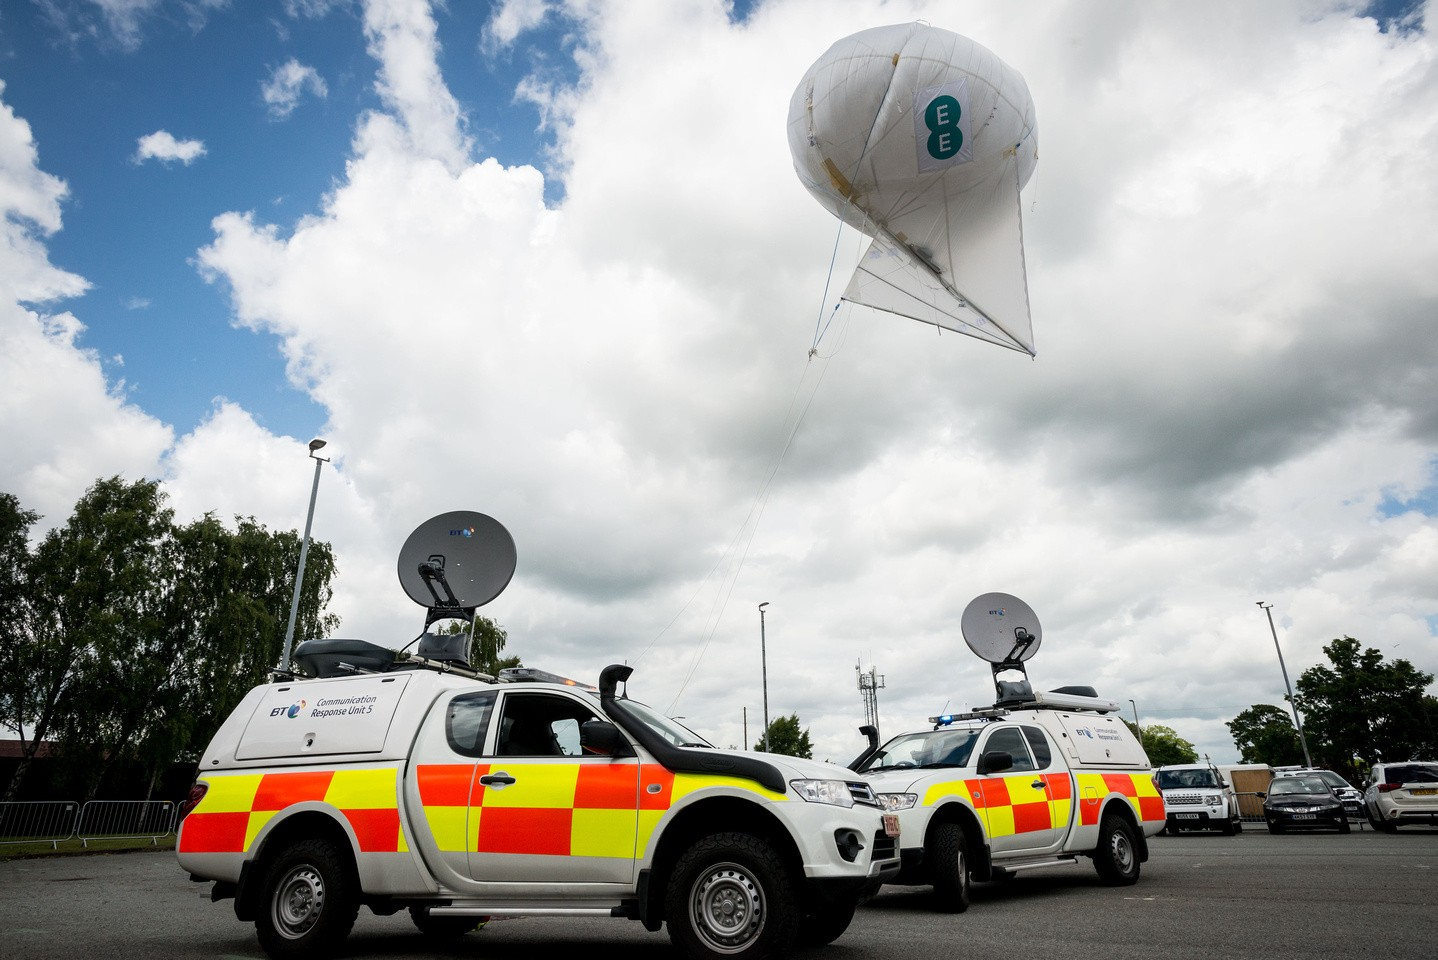 EE patent-pending 'air mast', with emergency communications response vehicle housing pre-standard 5G backhaul radio